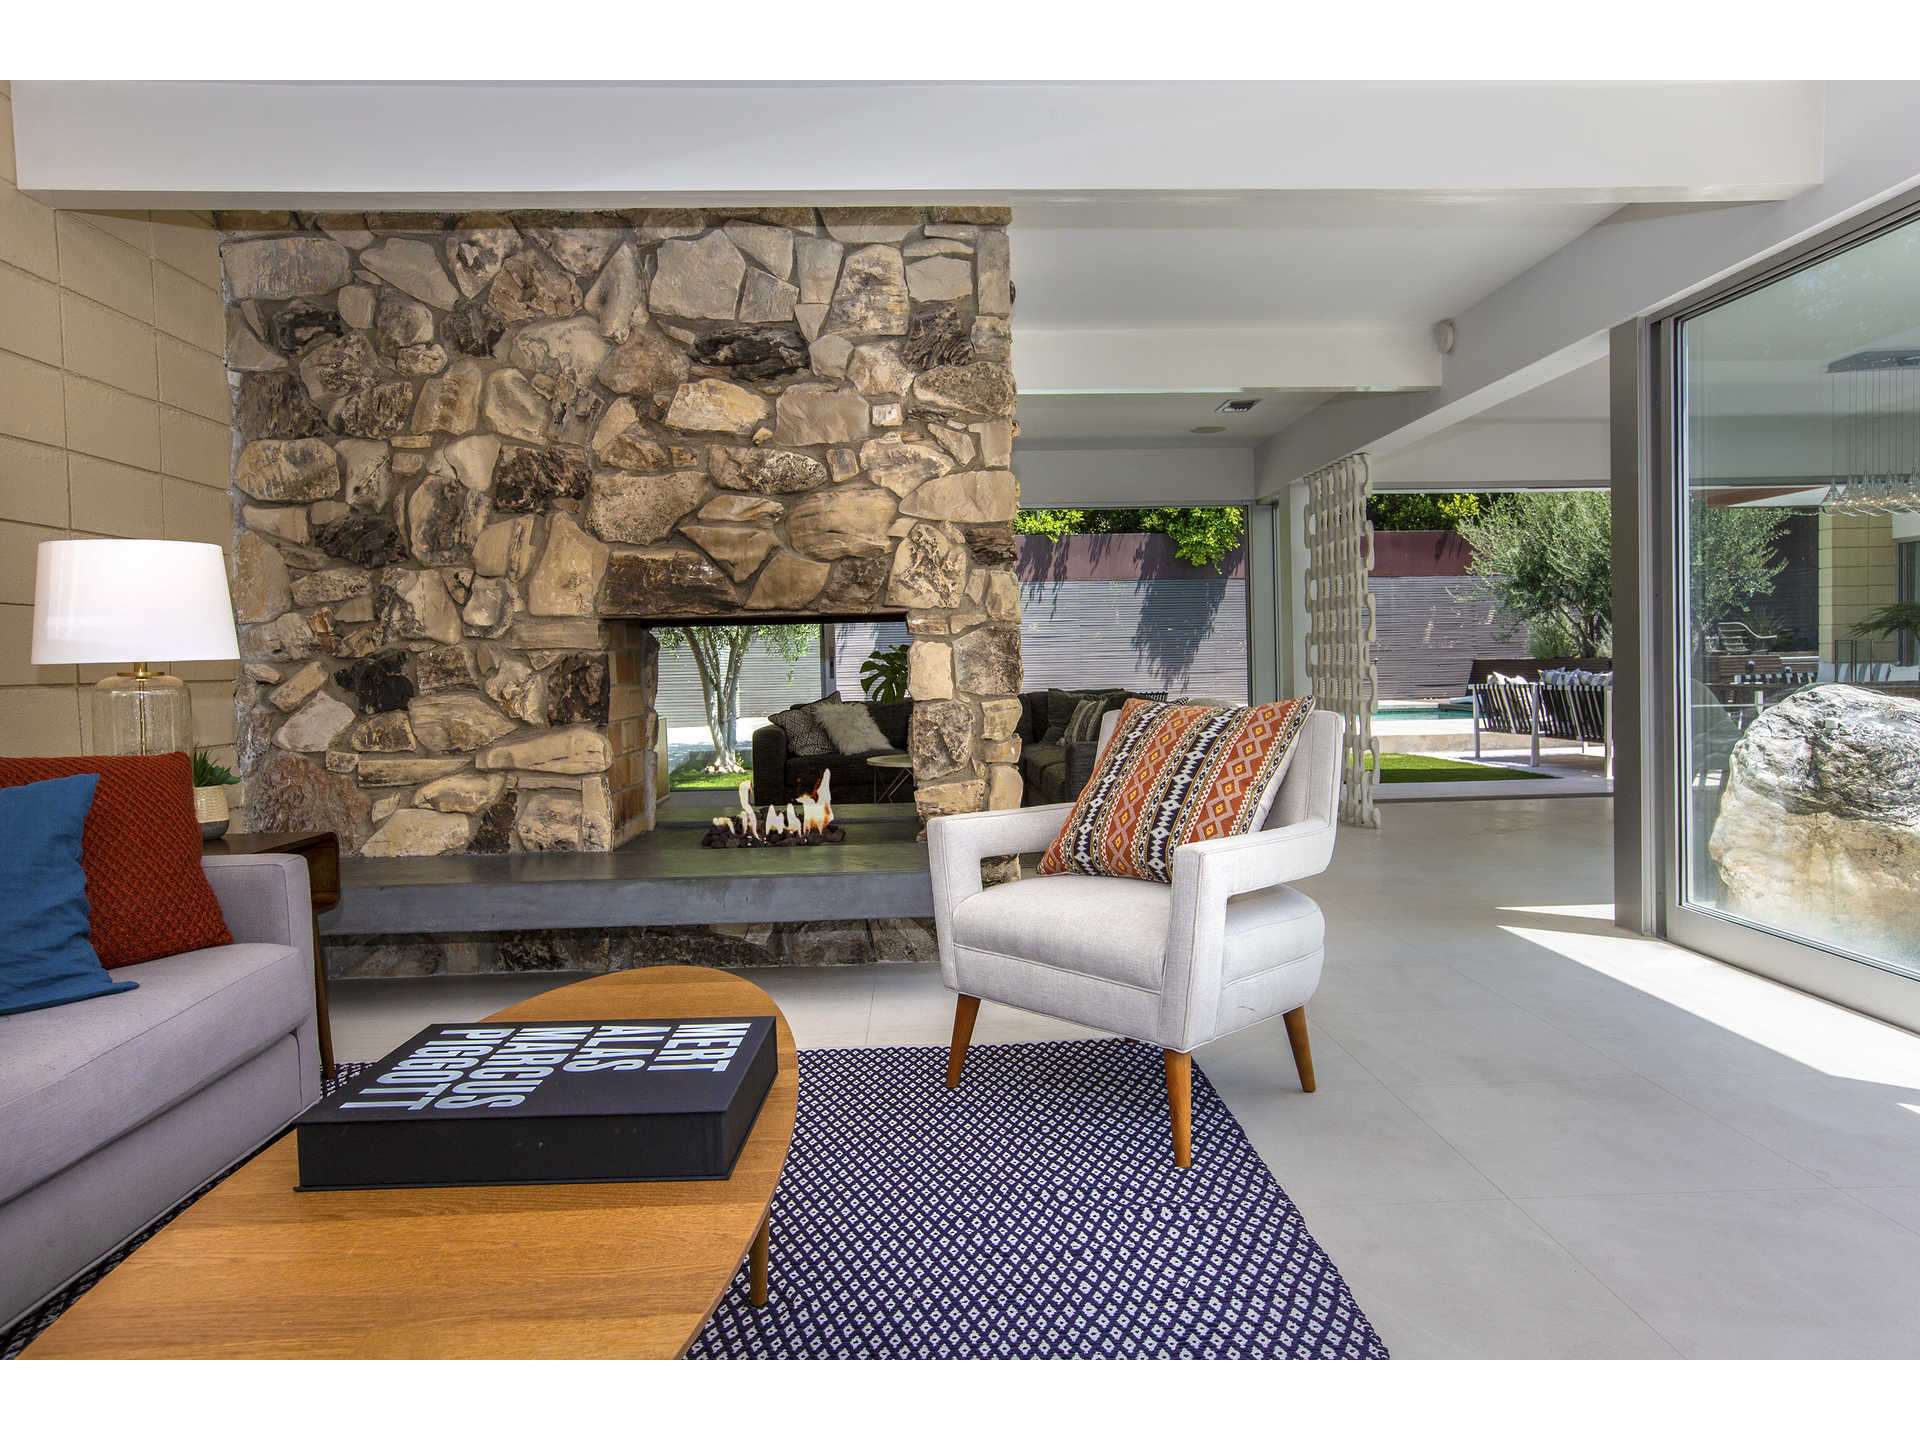 1959 midcentury home in Los Angeles - fire-pit living room